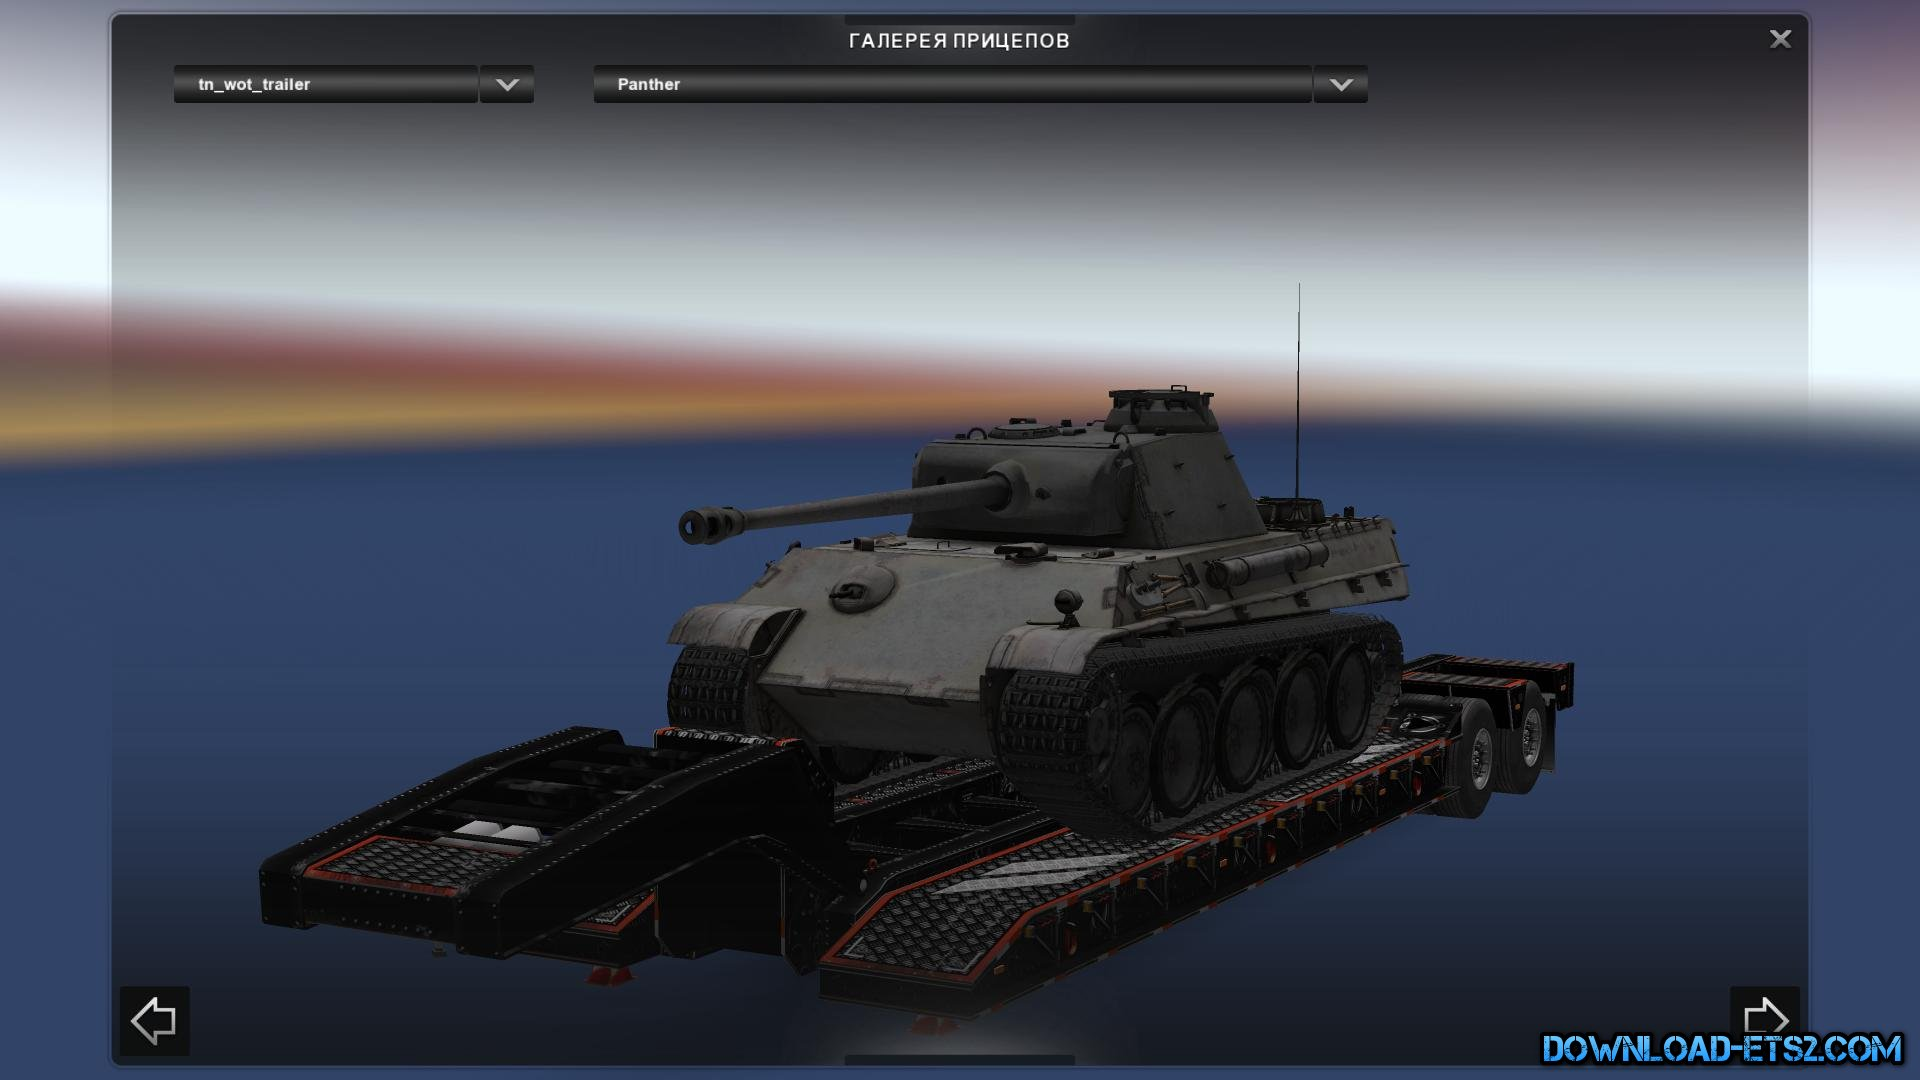 TRAILERS FROM GAME WORLD OF TANKS V1.1 for ETS2